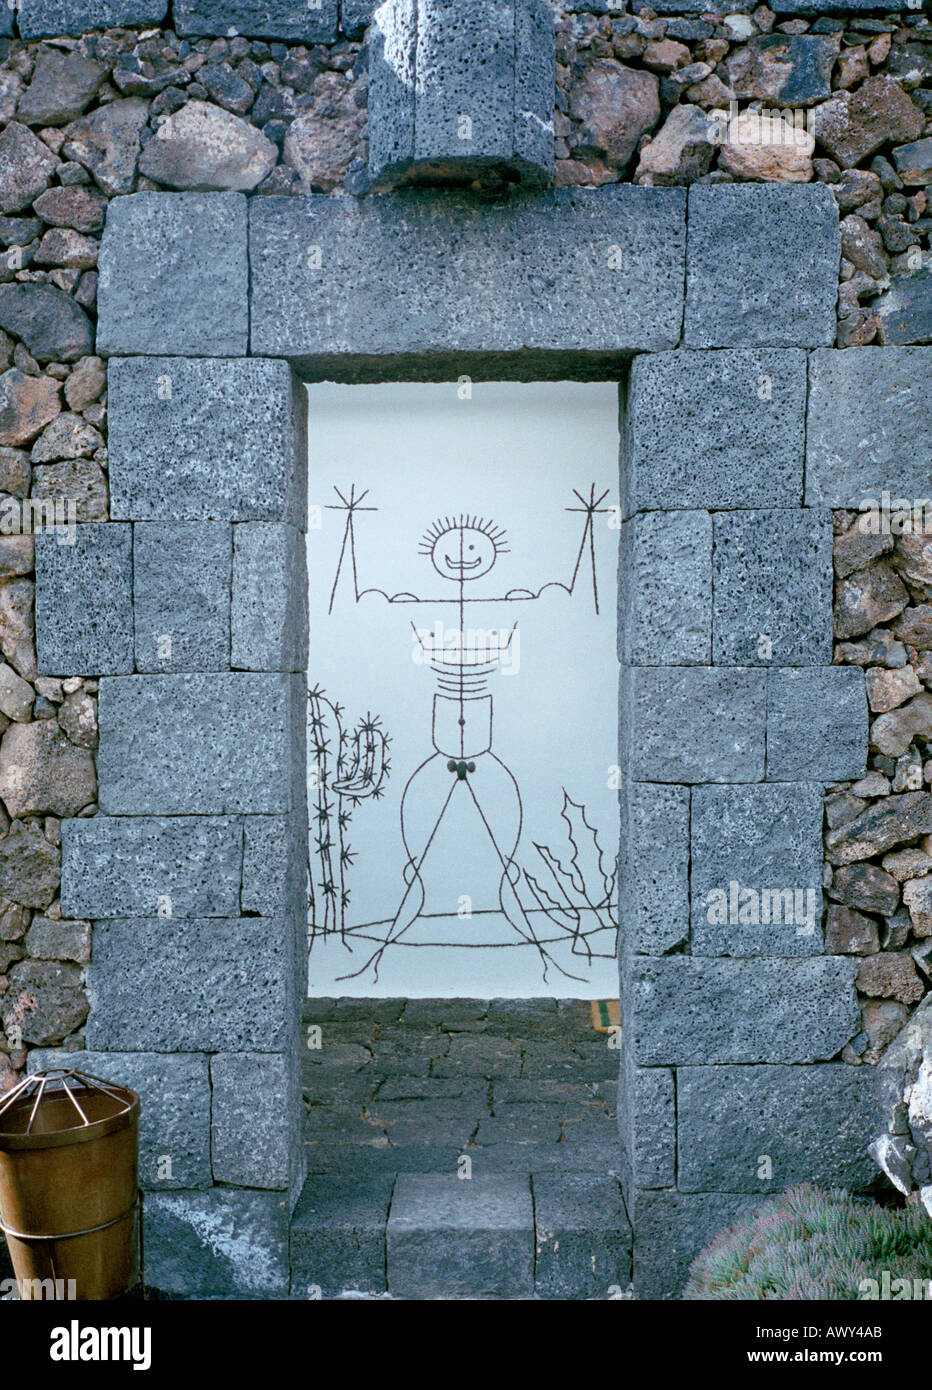 The man cartoon by Cesar Manrique at the cactus garden on Lanzarote island to indicate the public toilets - Stock Image